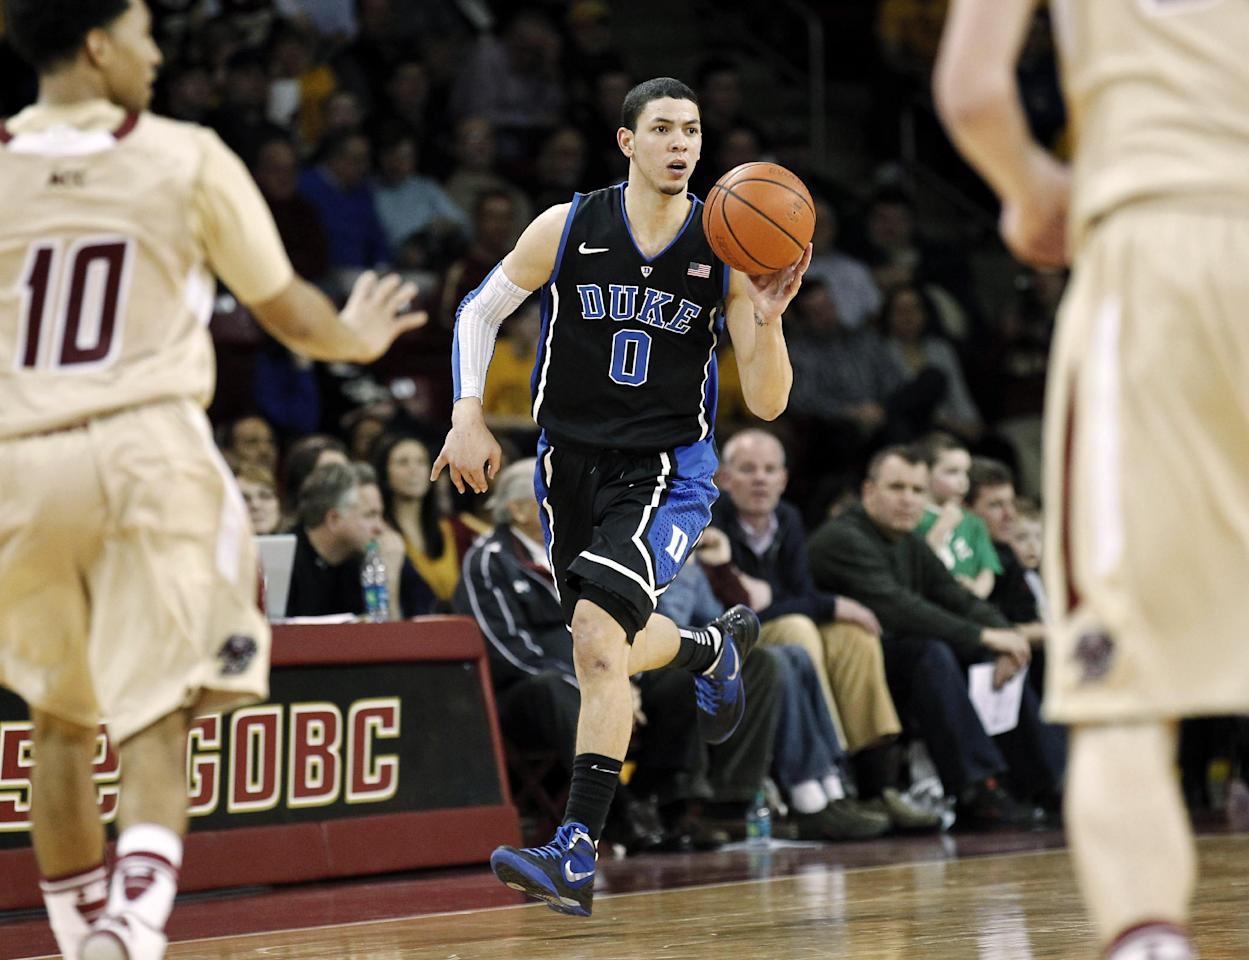 Duke's Austin Rivers brings the ball upcourt during the second half of their 75-50 win over Boston College in an NCAA college basketball game in Boston, Sunday, Feb. 19, 2012. (AP Photo/Winslow Townson)